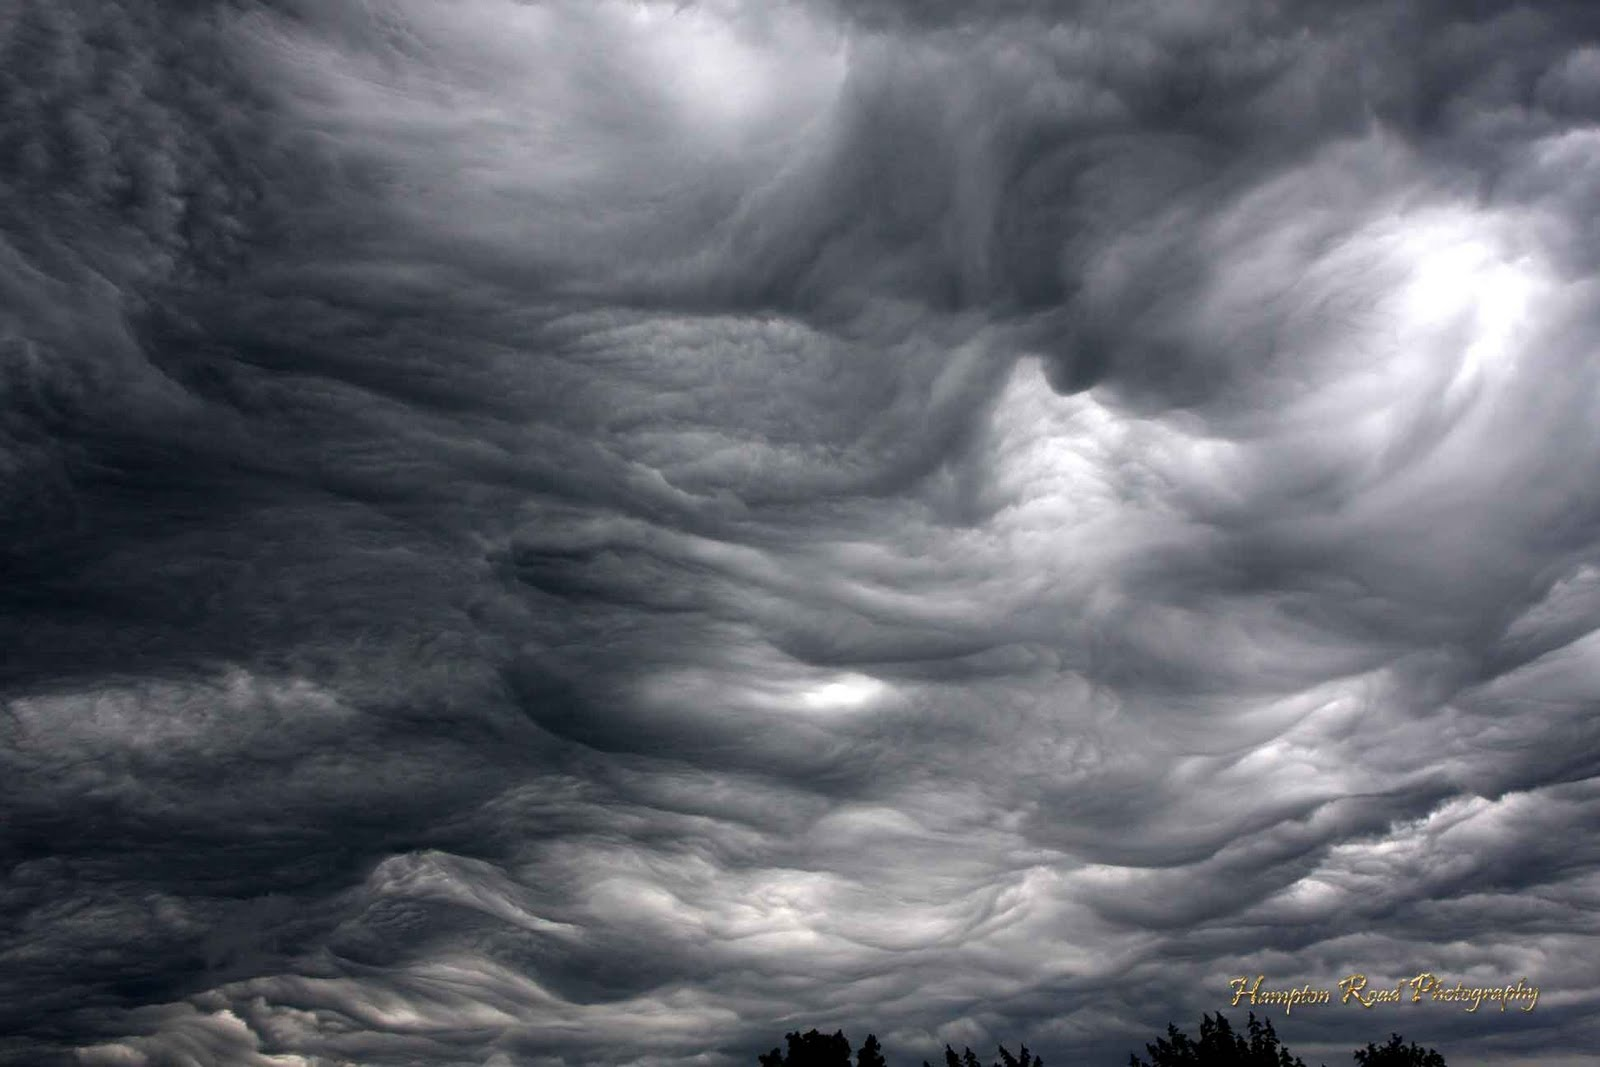 Undulatus-asperatus-looks-like-sea-wave